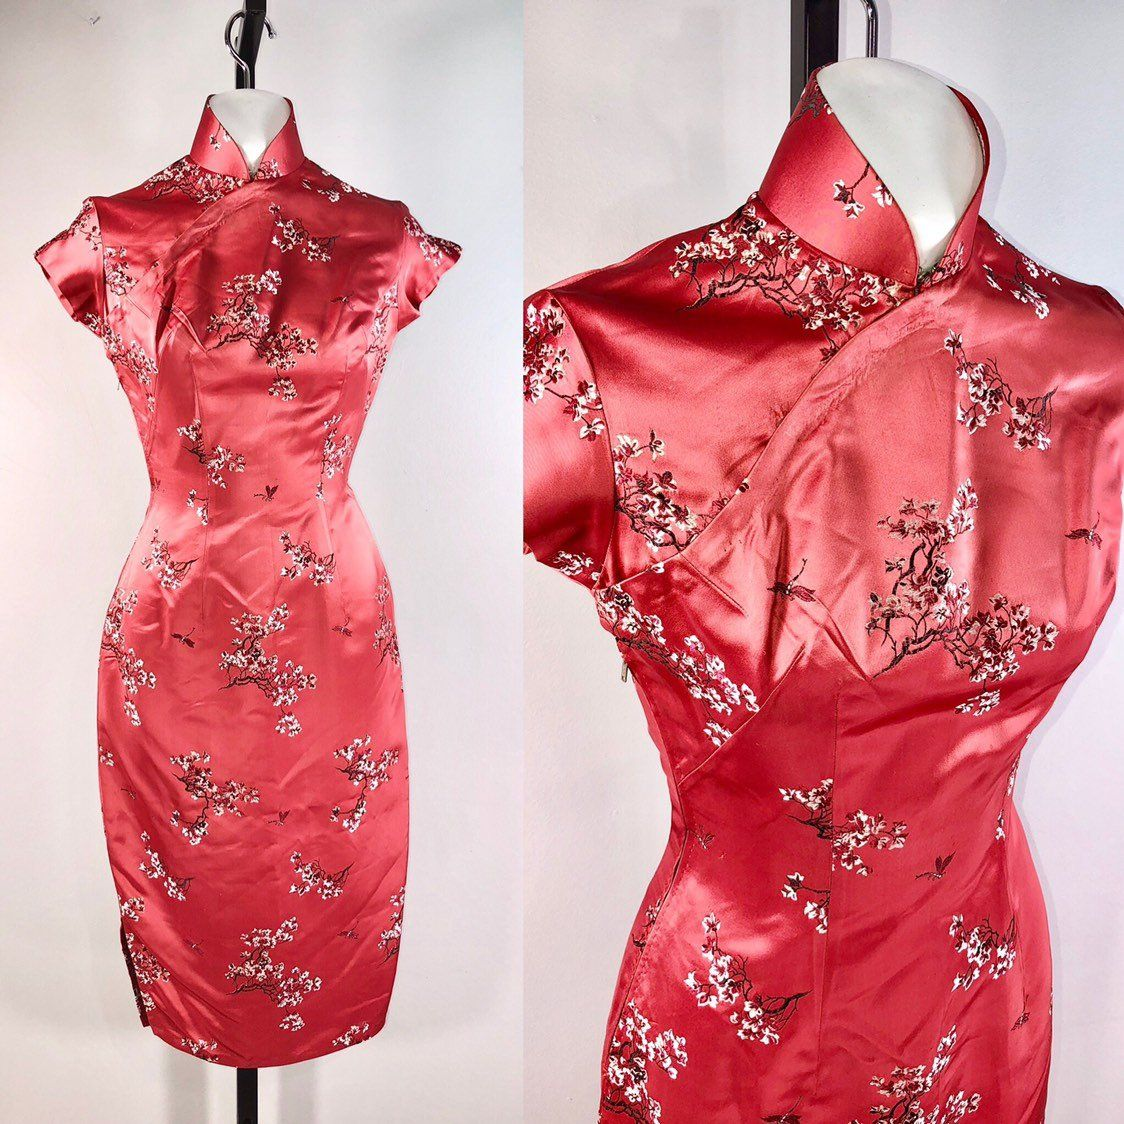 40s dress Vintage 1940s Cheongsam Chinese Dress Flowers Brocade 32 ... 1c4624e1f5